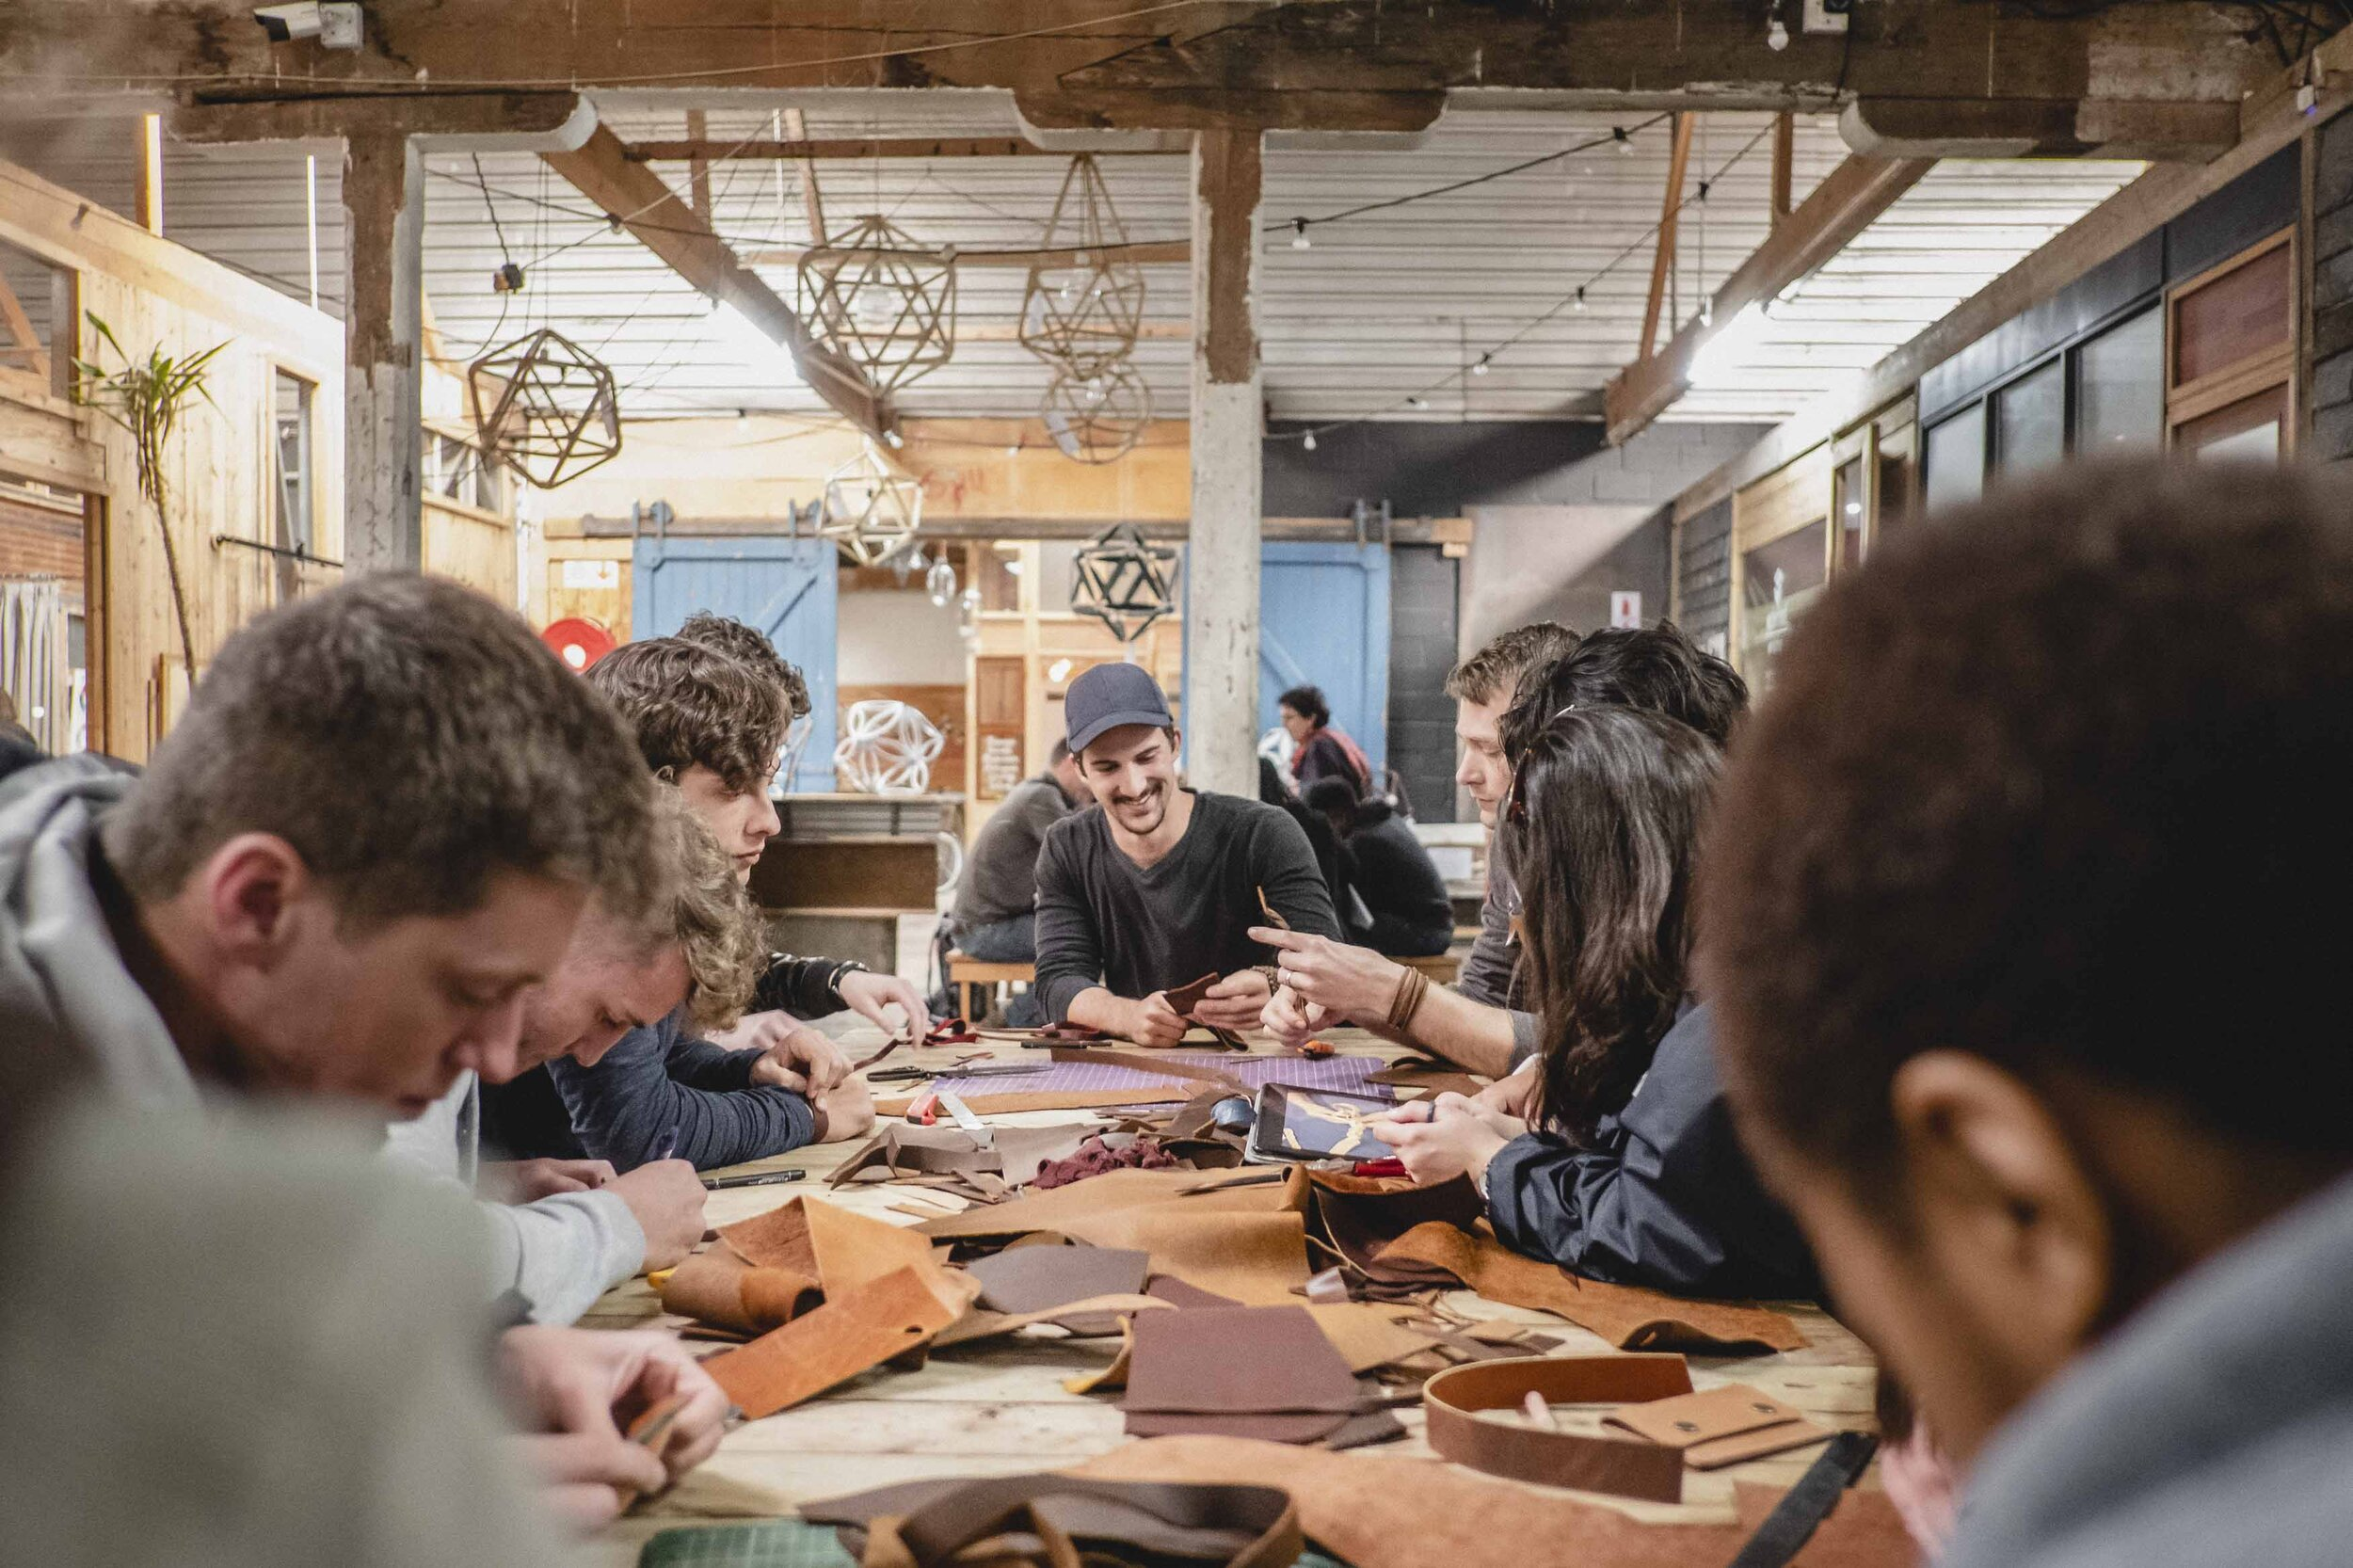 Art Experience - Awe Art experiences allow you to work with an artist or crafter on something special you can take home, that represents your travel experience in Port Elizabeth. Spend this time learning a new skill and get a glimpse into the life of an artist or crafter.